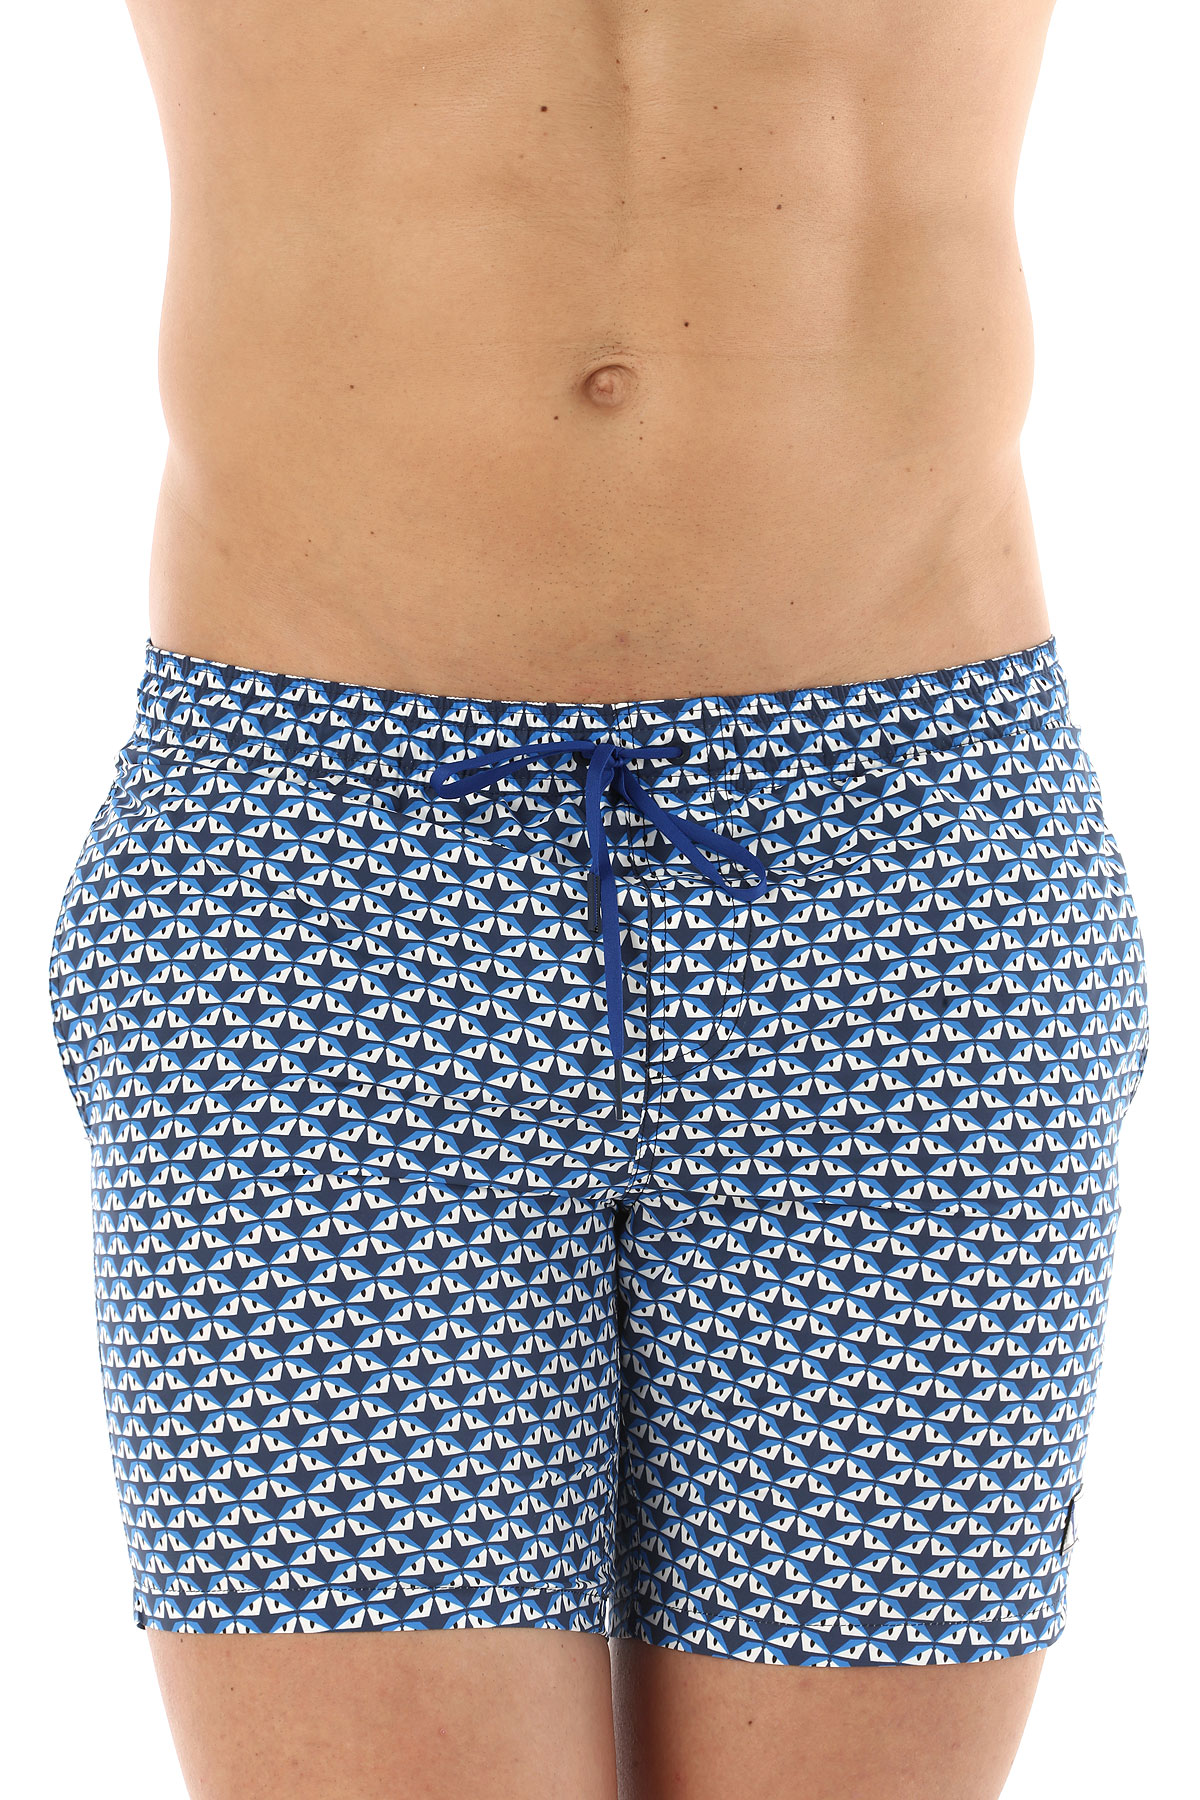 Image of Fendi Mens Swimwear On Sale in Outlet, Blue, poliammide, 2017, XS (EU 44) XL (EU 52)